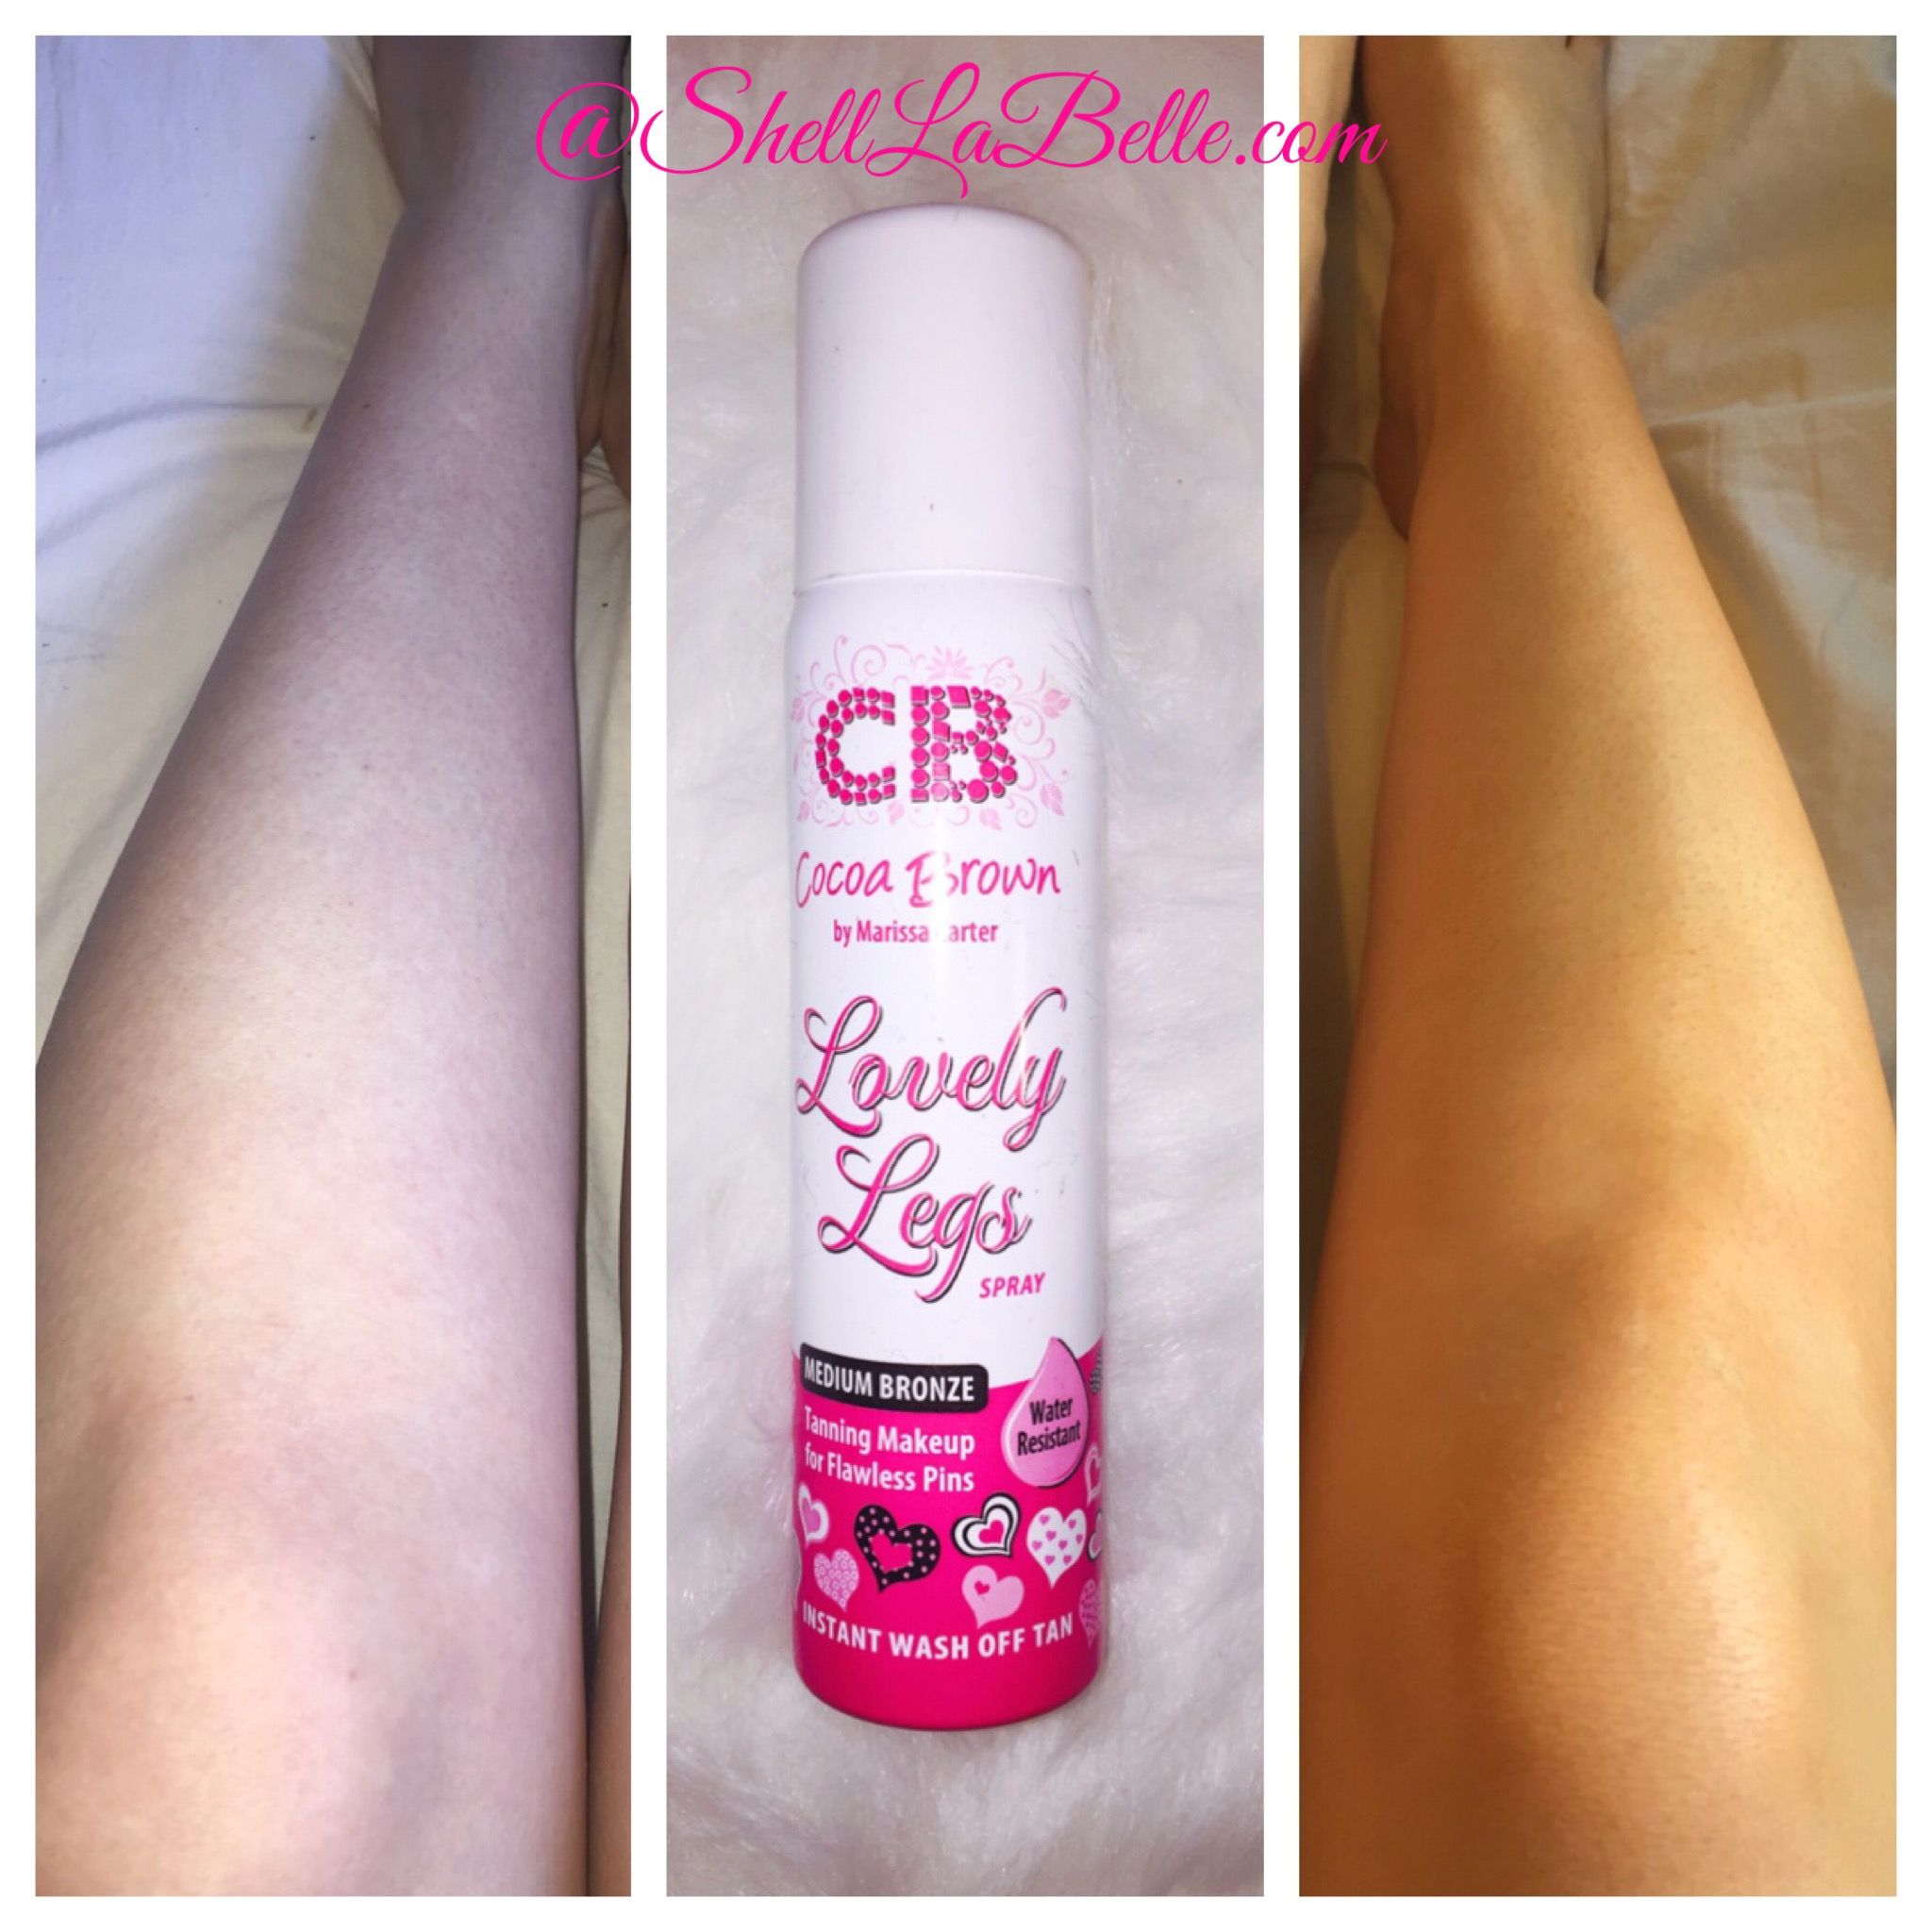 Cocoa brown lovely legs spray review